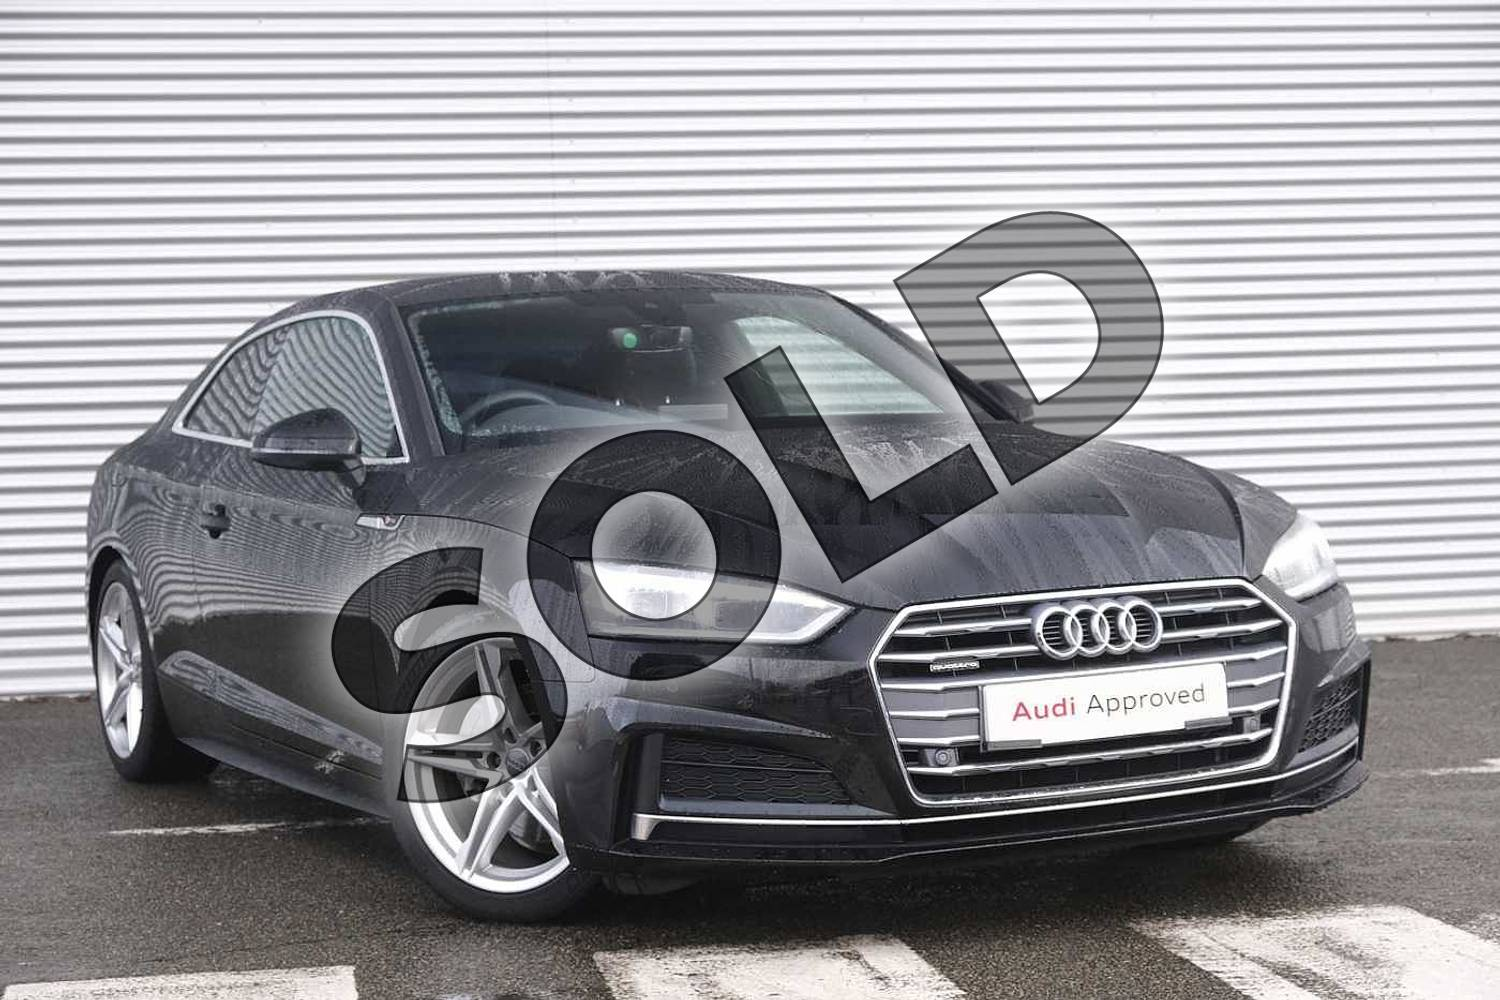 2018 Audi A5 Diesel Coupe Diesel 2.0 TDI Quattro S Line 2dr S Tronic in Myth Black Metallic at Coventry Audi